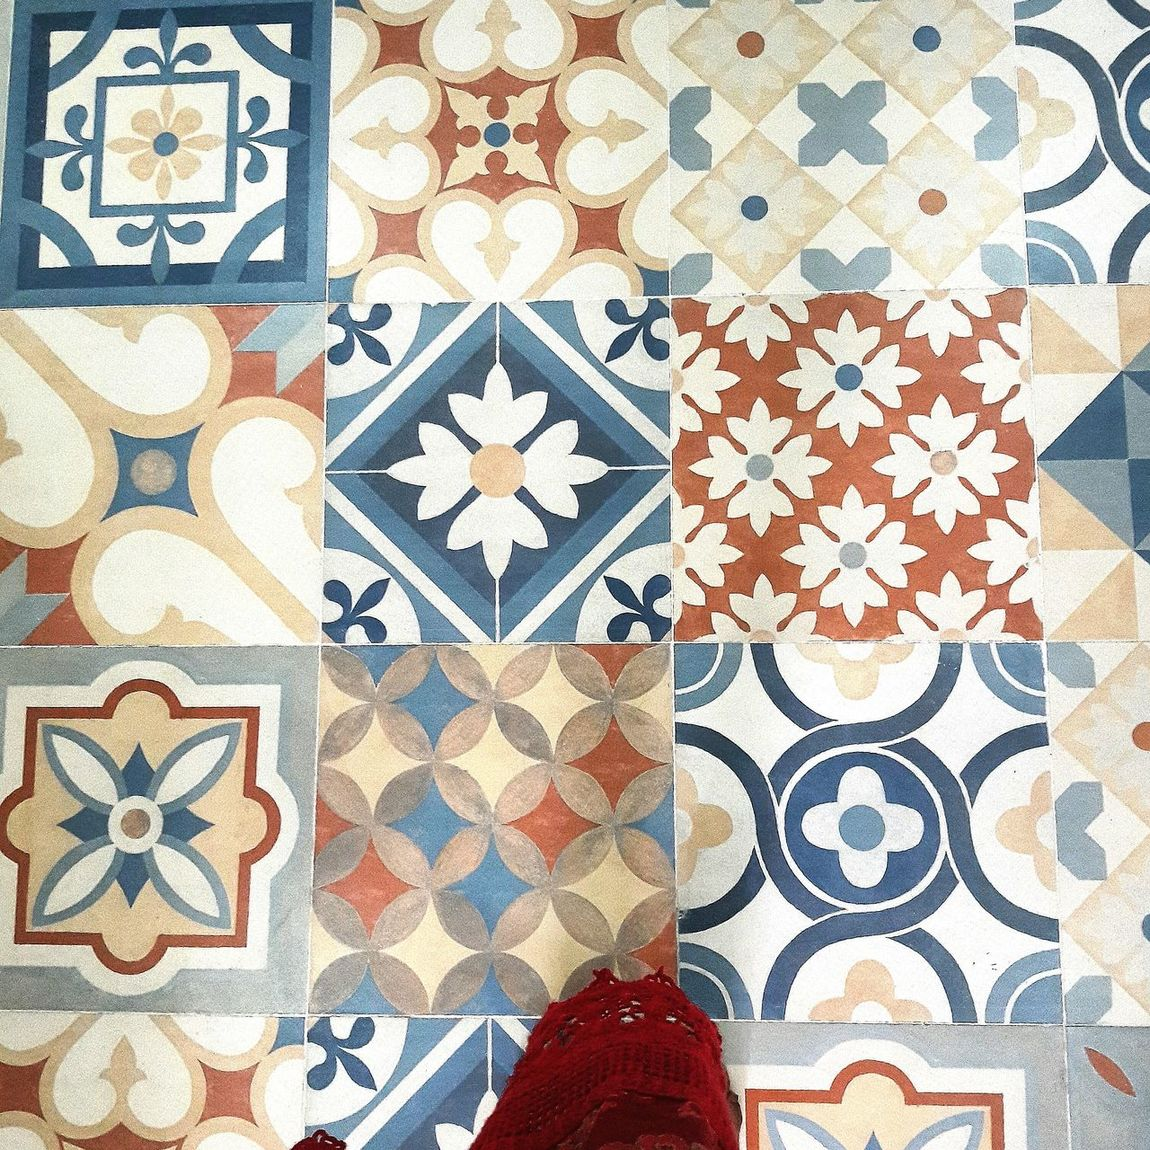 What a beautiful tiles! First Eyeem Photo EyeEm Eyeemphoto Abirdseyeview Pivotal Ideas Tiles Tiles Textures Tiles Architecture Tilesart Tiles Of Morocco Tilesaddiction Tiles Floor ArtWork Art Enthusiast Beautiful Taking Photos Portrait Check This Out Marvelouscapture Style Pattern Design Interior Decorating From Where I Stand From My Point Of View I Have This Thing With Floors